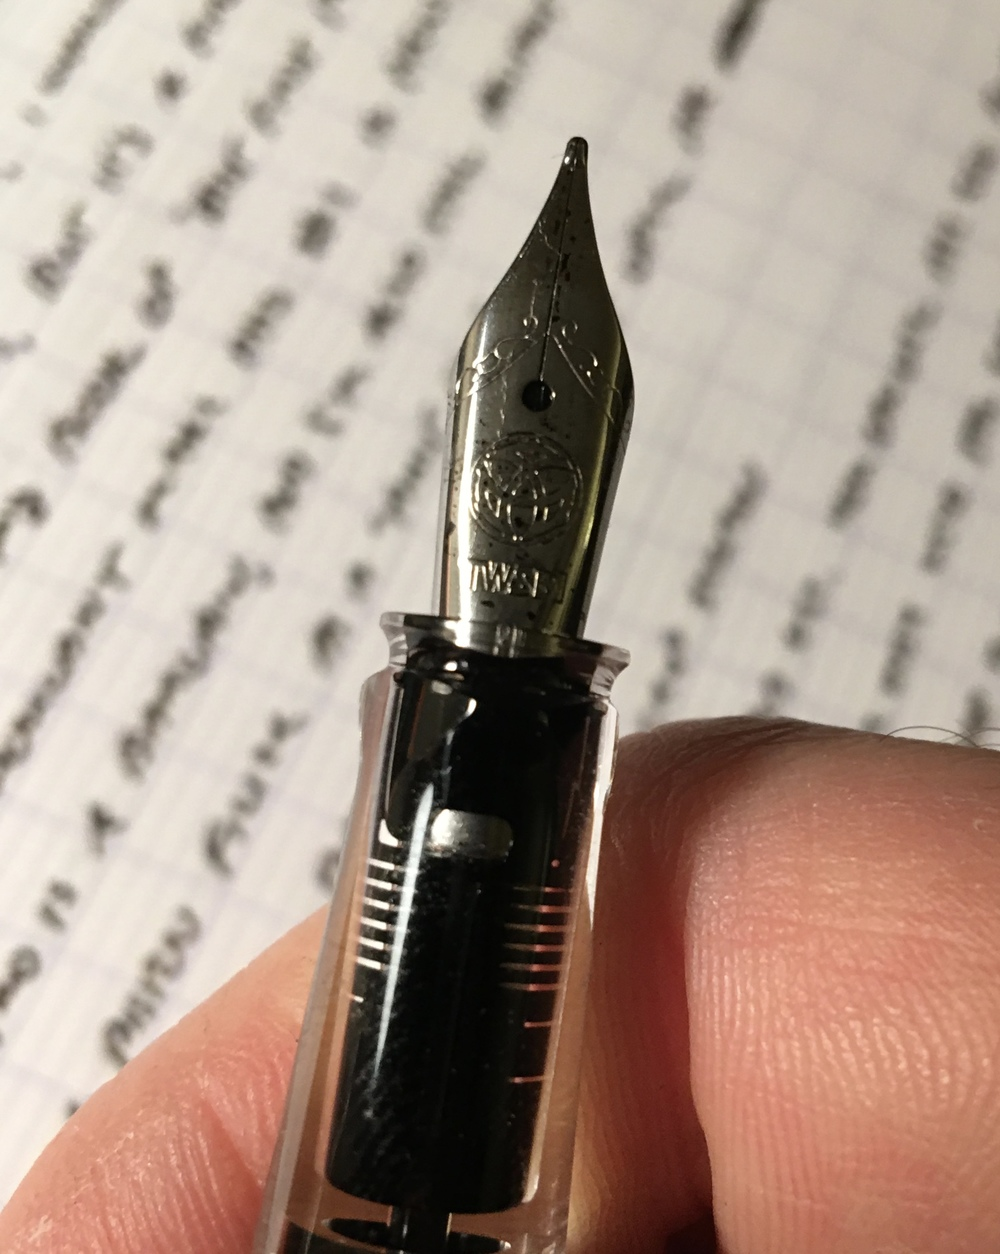 A shot of the TWSBI Eco nib and round, transparent section.  For some reason, I love the clear section on the Eco.  You can really see how the ink saturates the feed and works its way down to the nib.